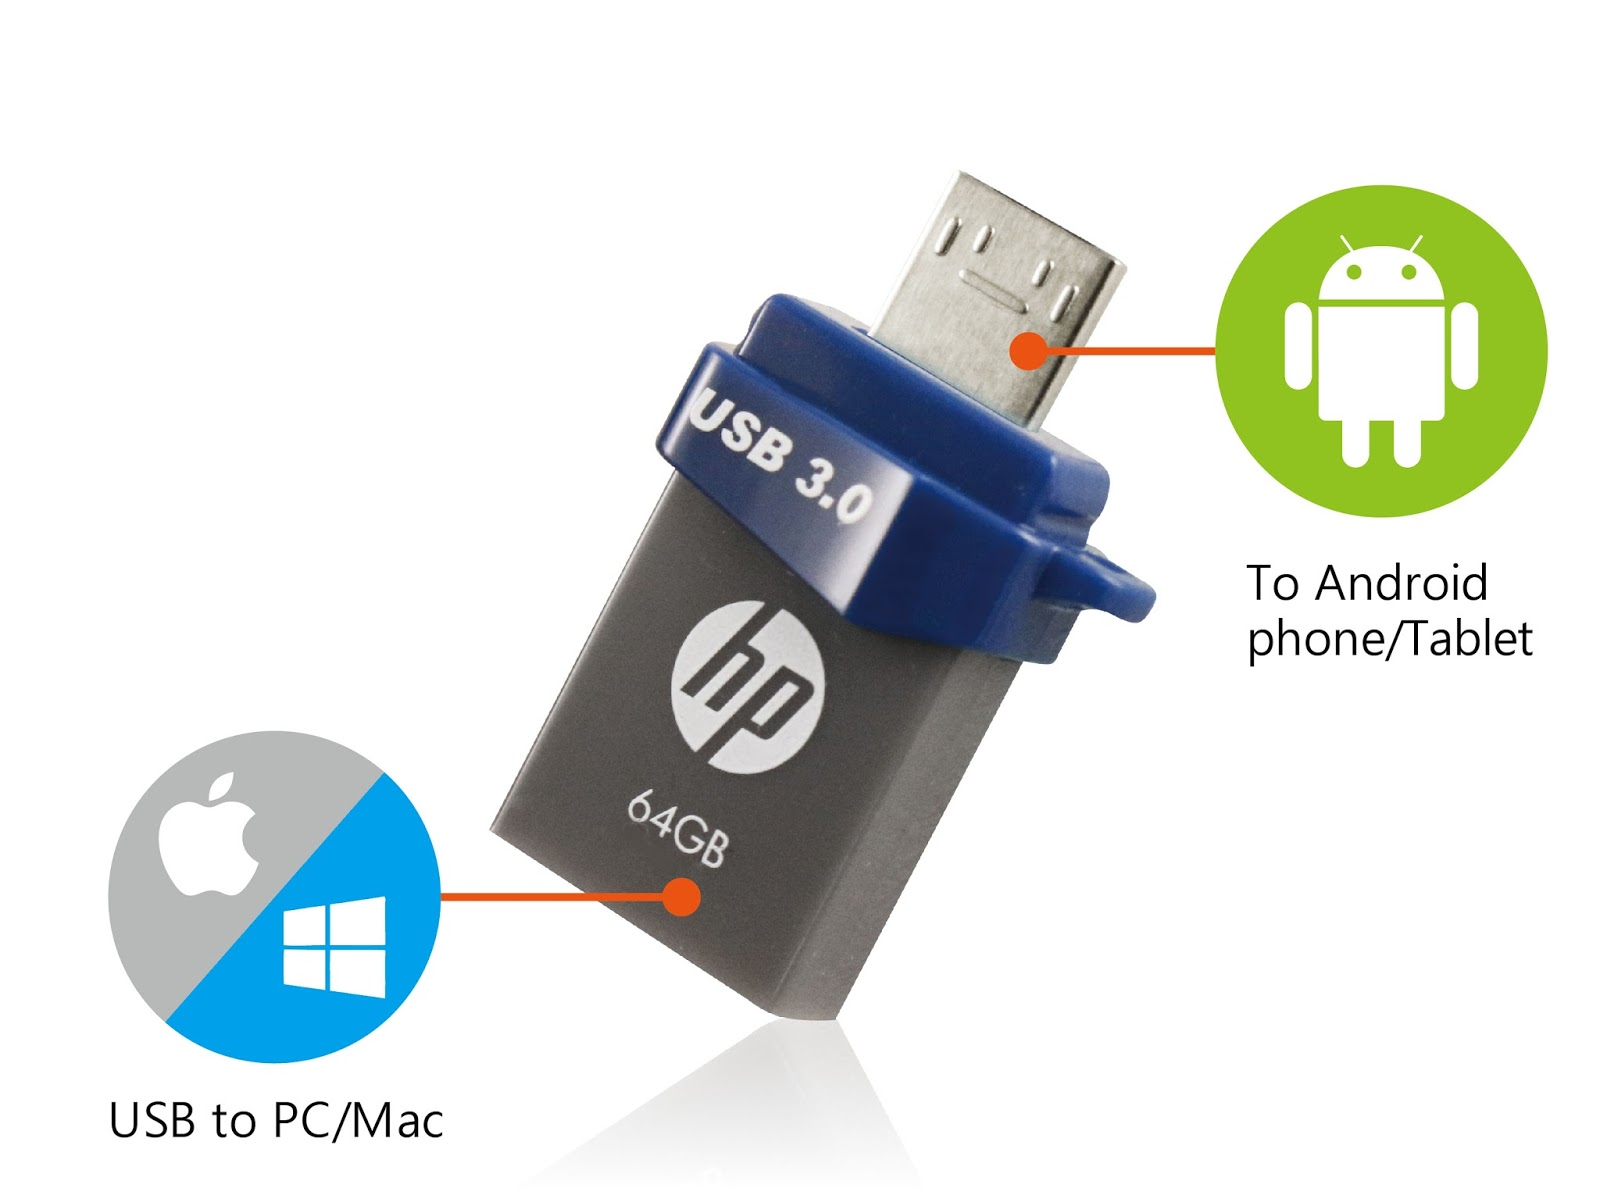 HP x790m OTG (On-the-go) Flash Drive